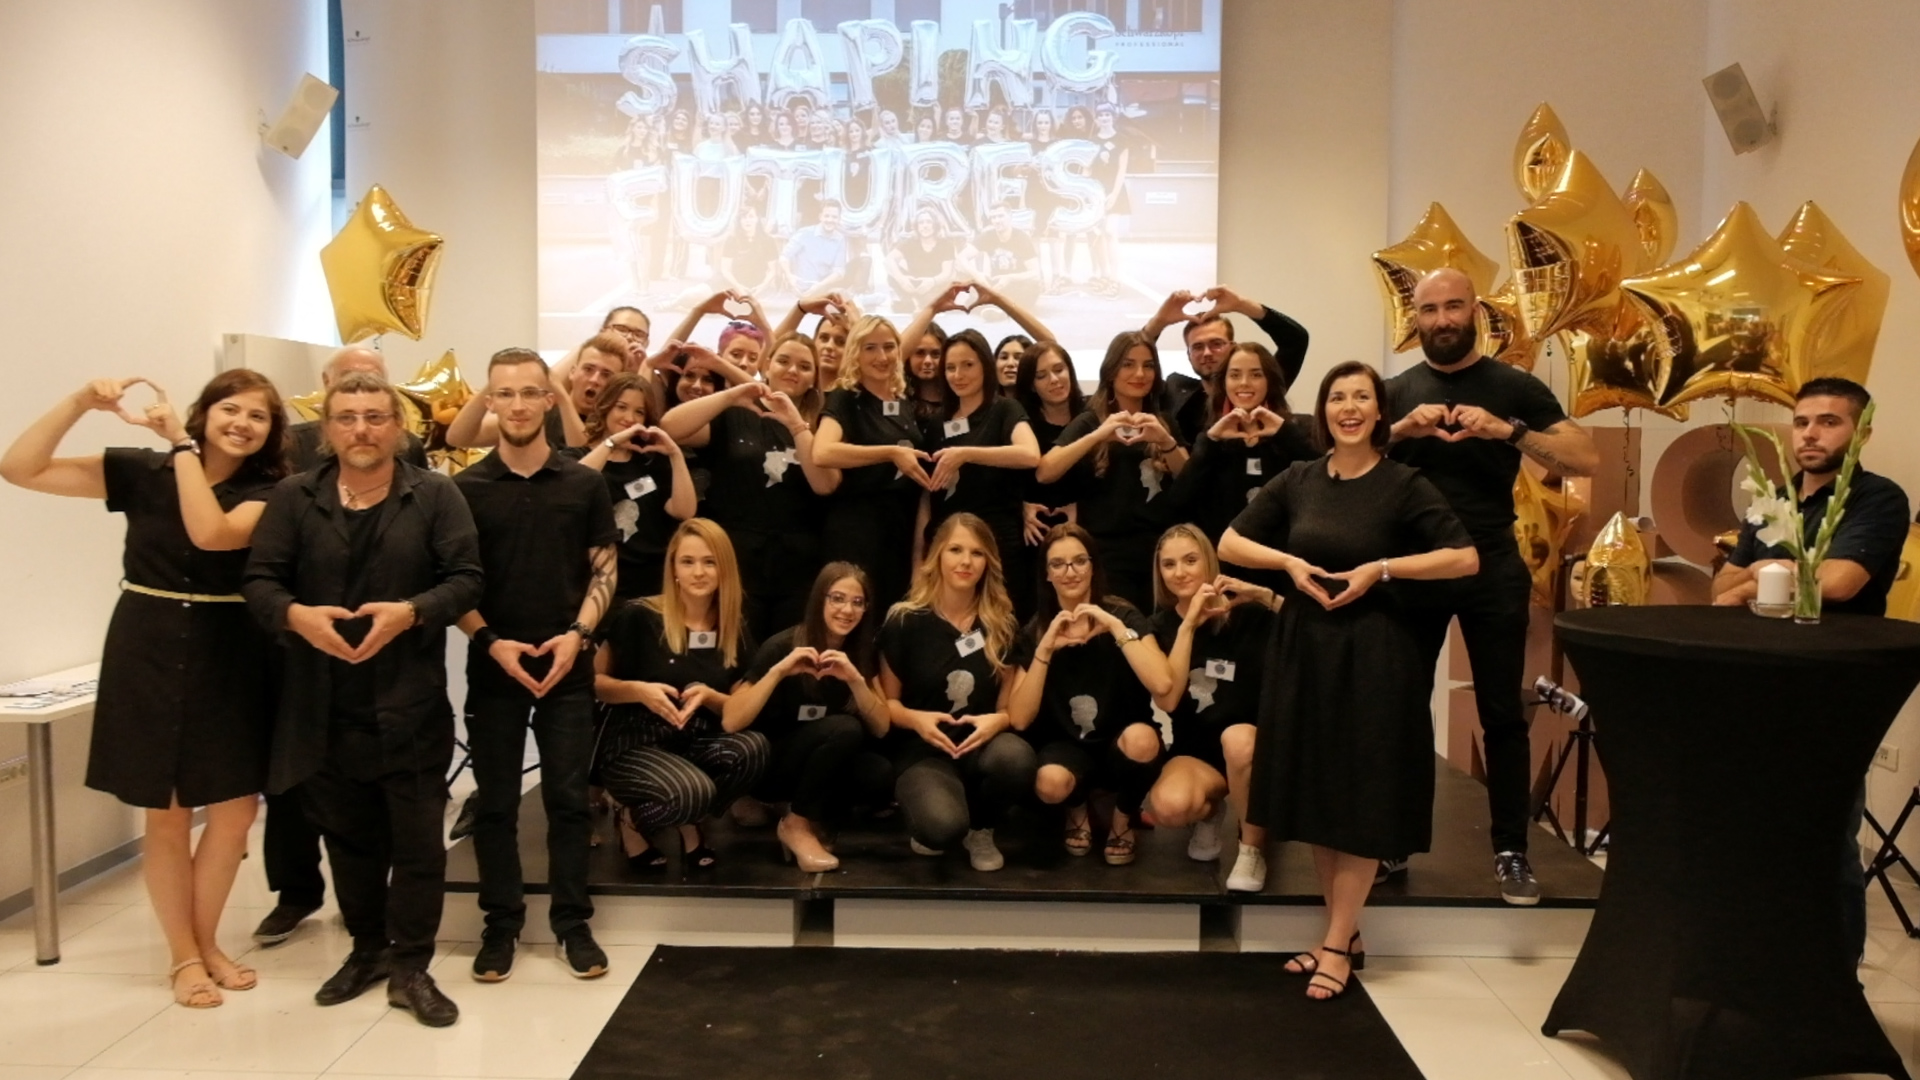 Schwarzkopf Professional Shaping Futures 6